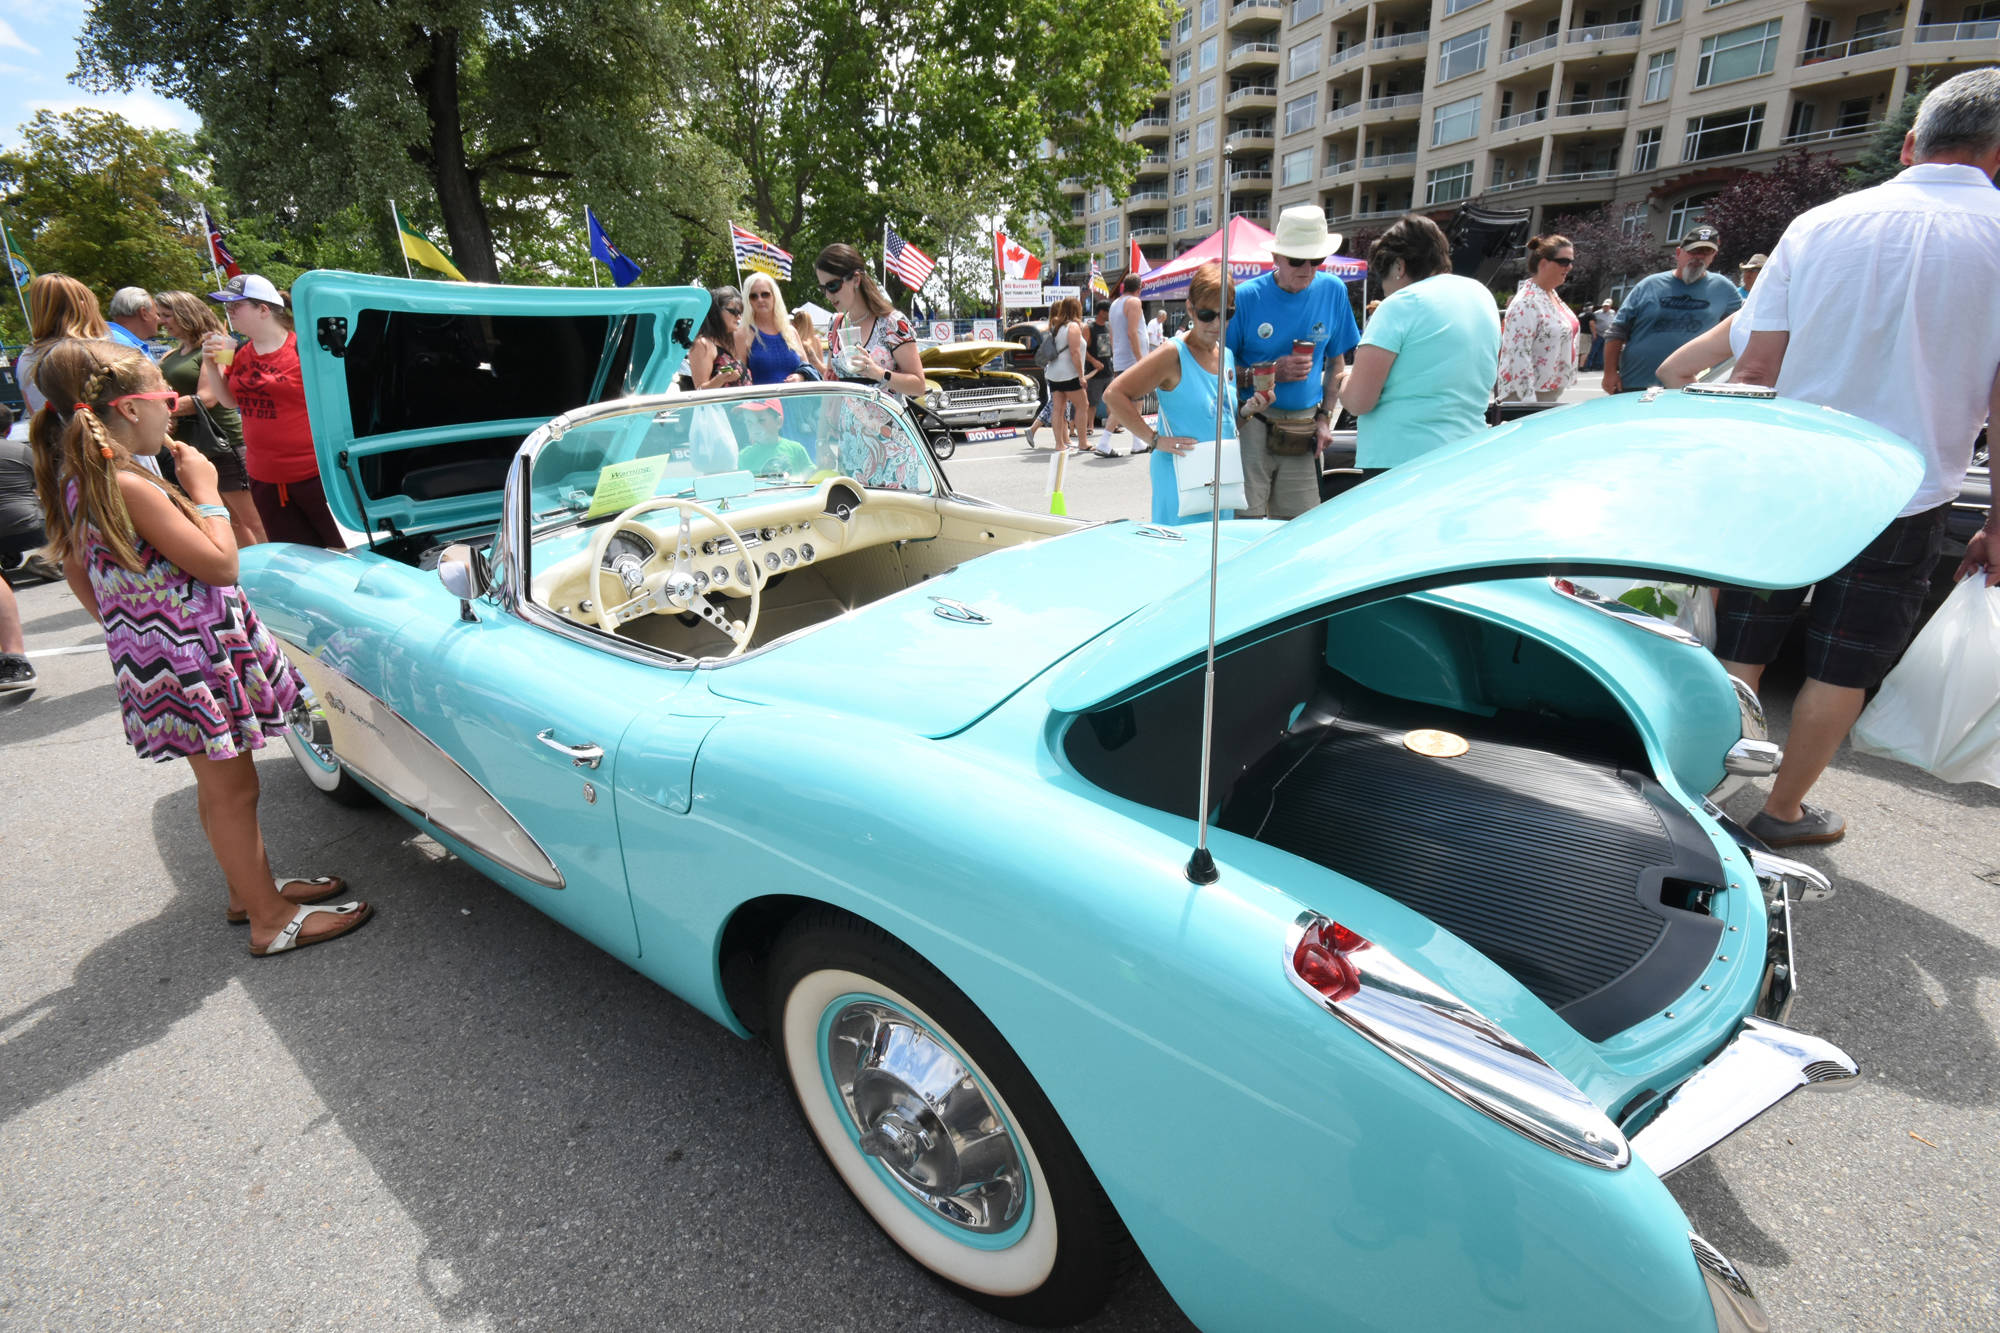 The Peach City Beach Cruise in Penticton has featured many vintage and collectible vehicles, including this baby blue Corvette convertable. (Black Press file photo)